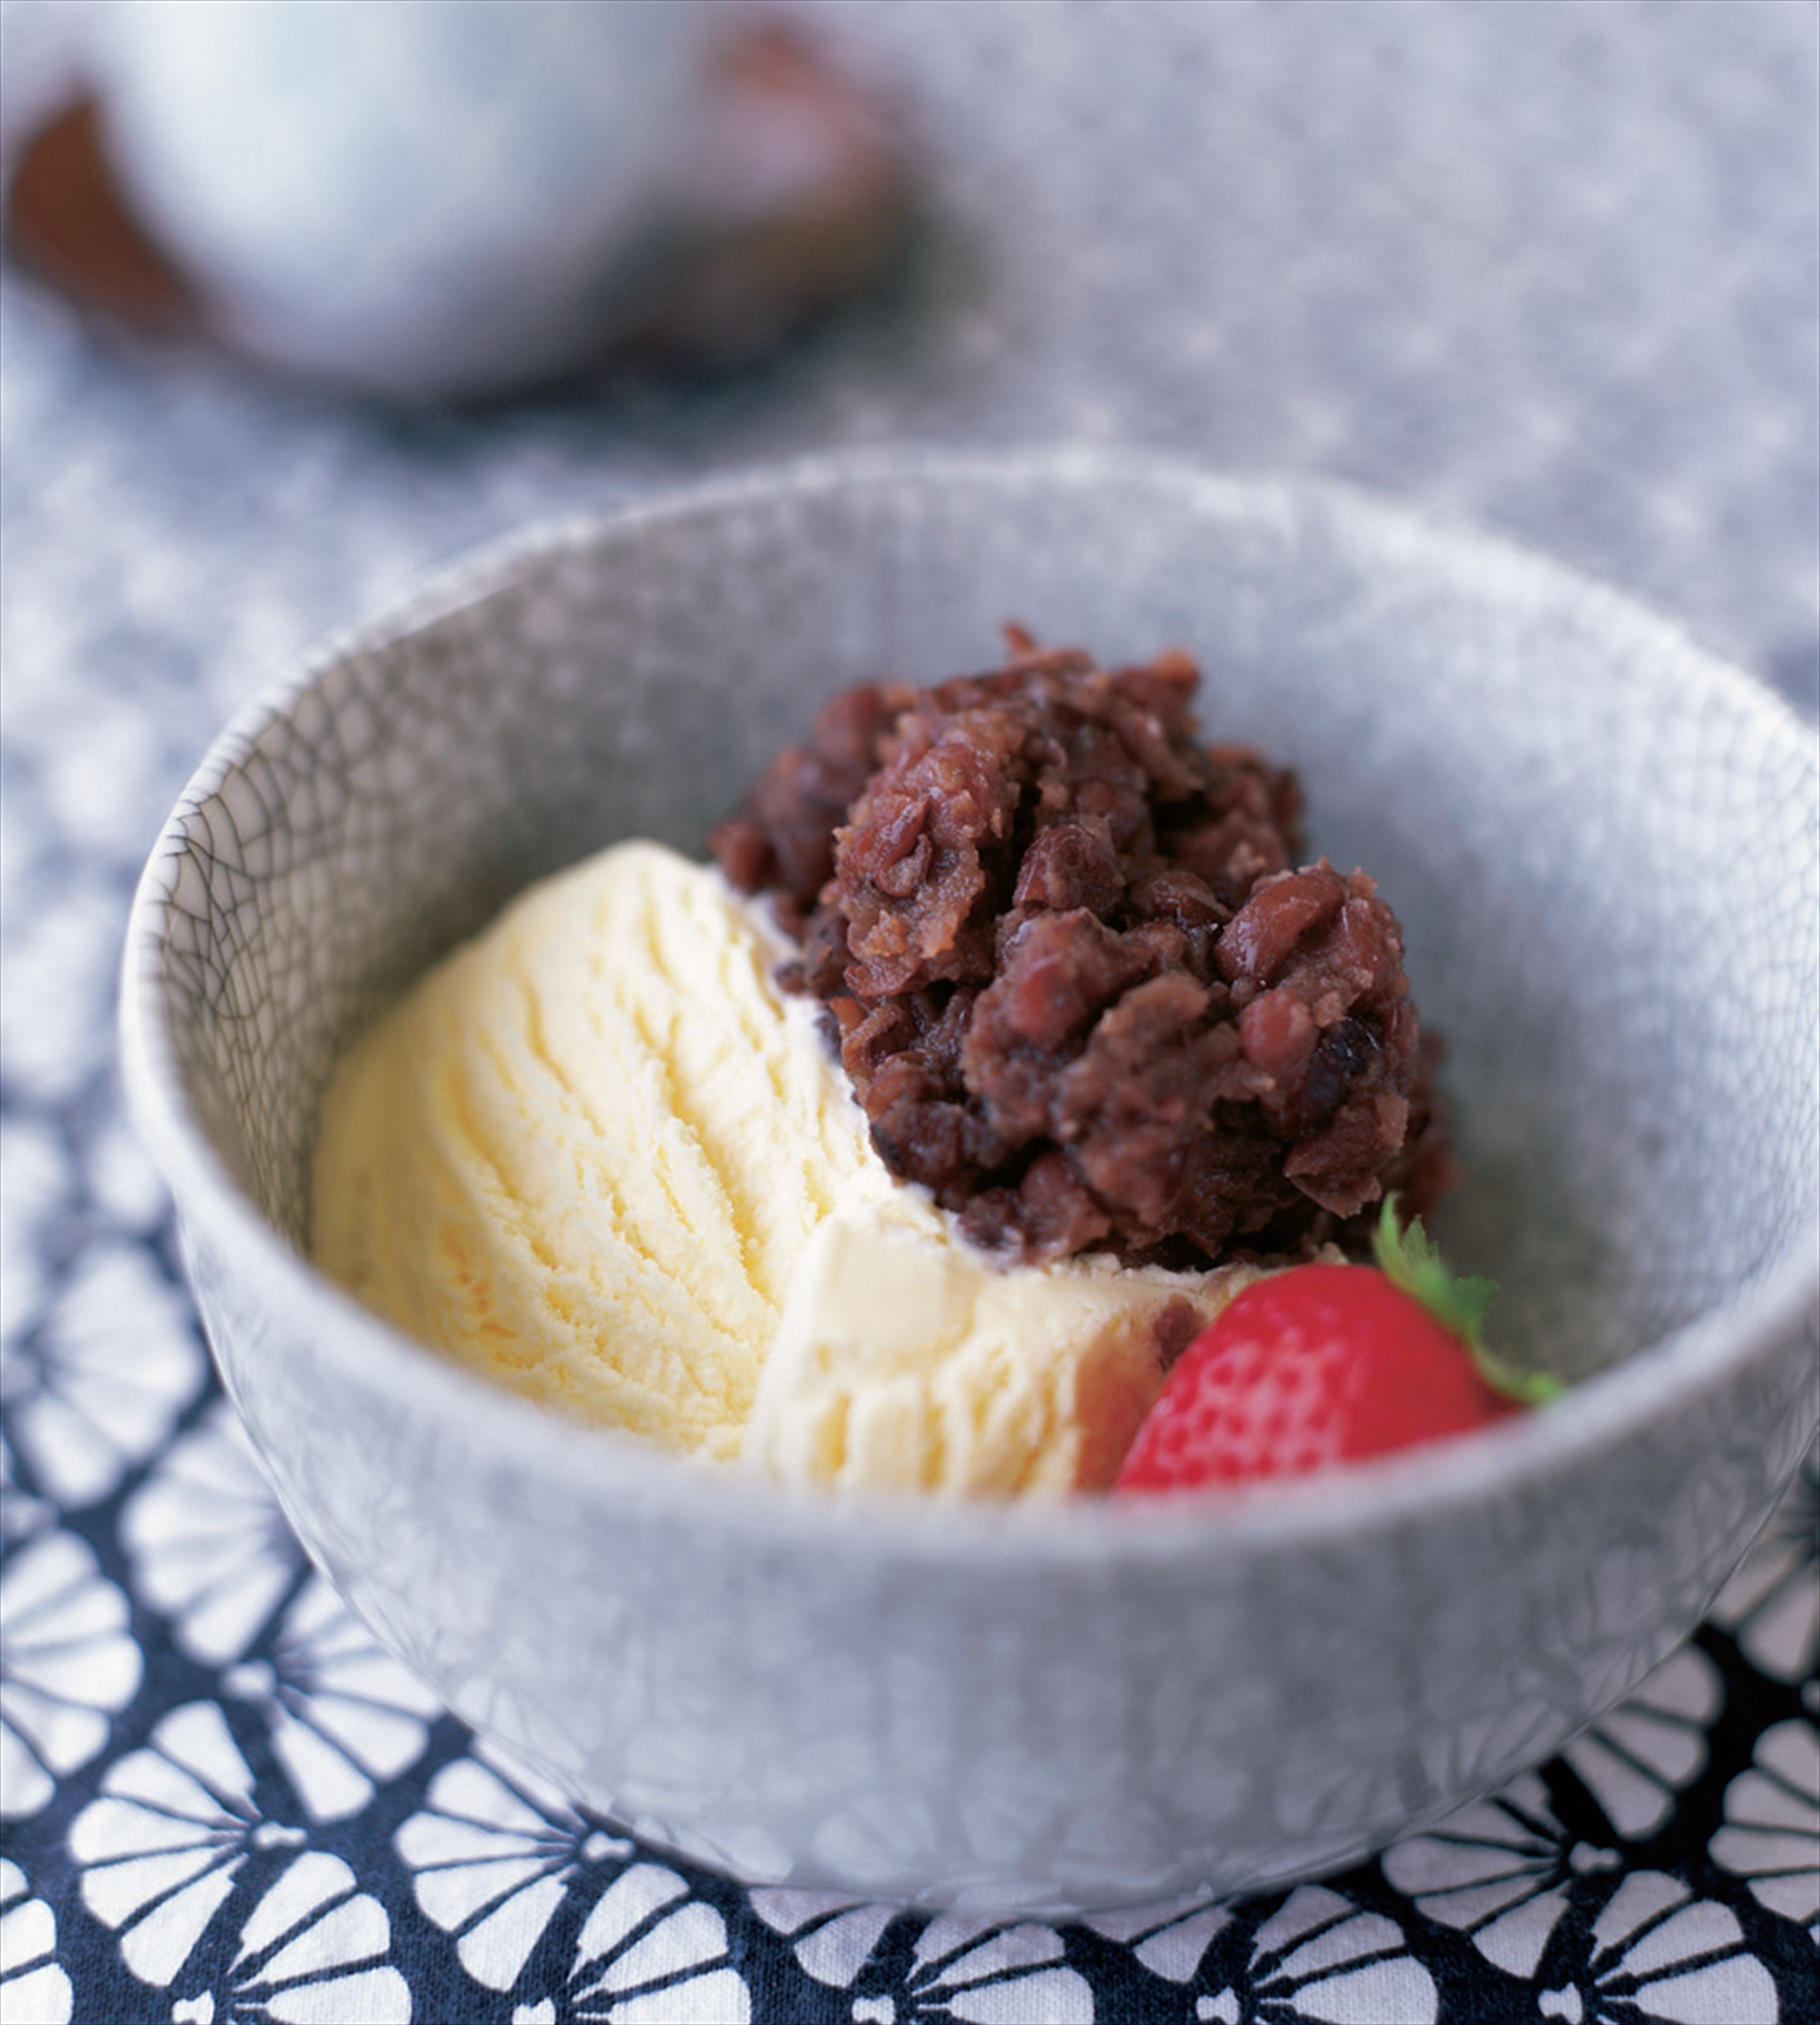 Ice-cream with adzuki beans